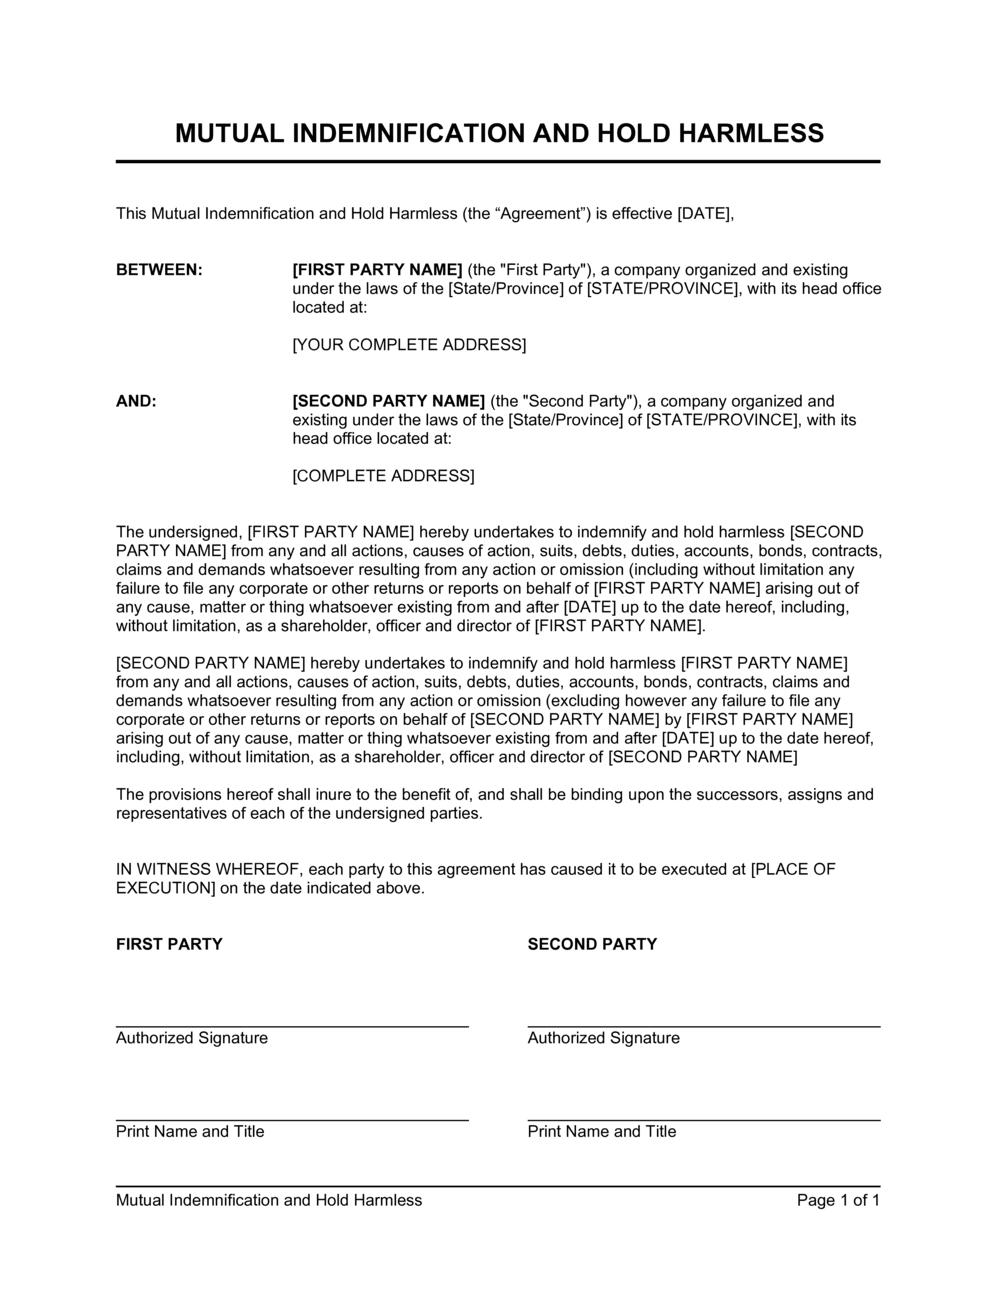 Business-in-a-Box's Mutual Indemnification and Hold Harmless Agreement Template